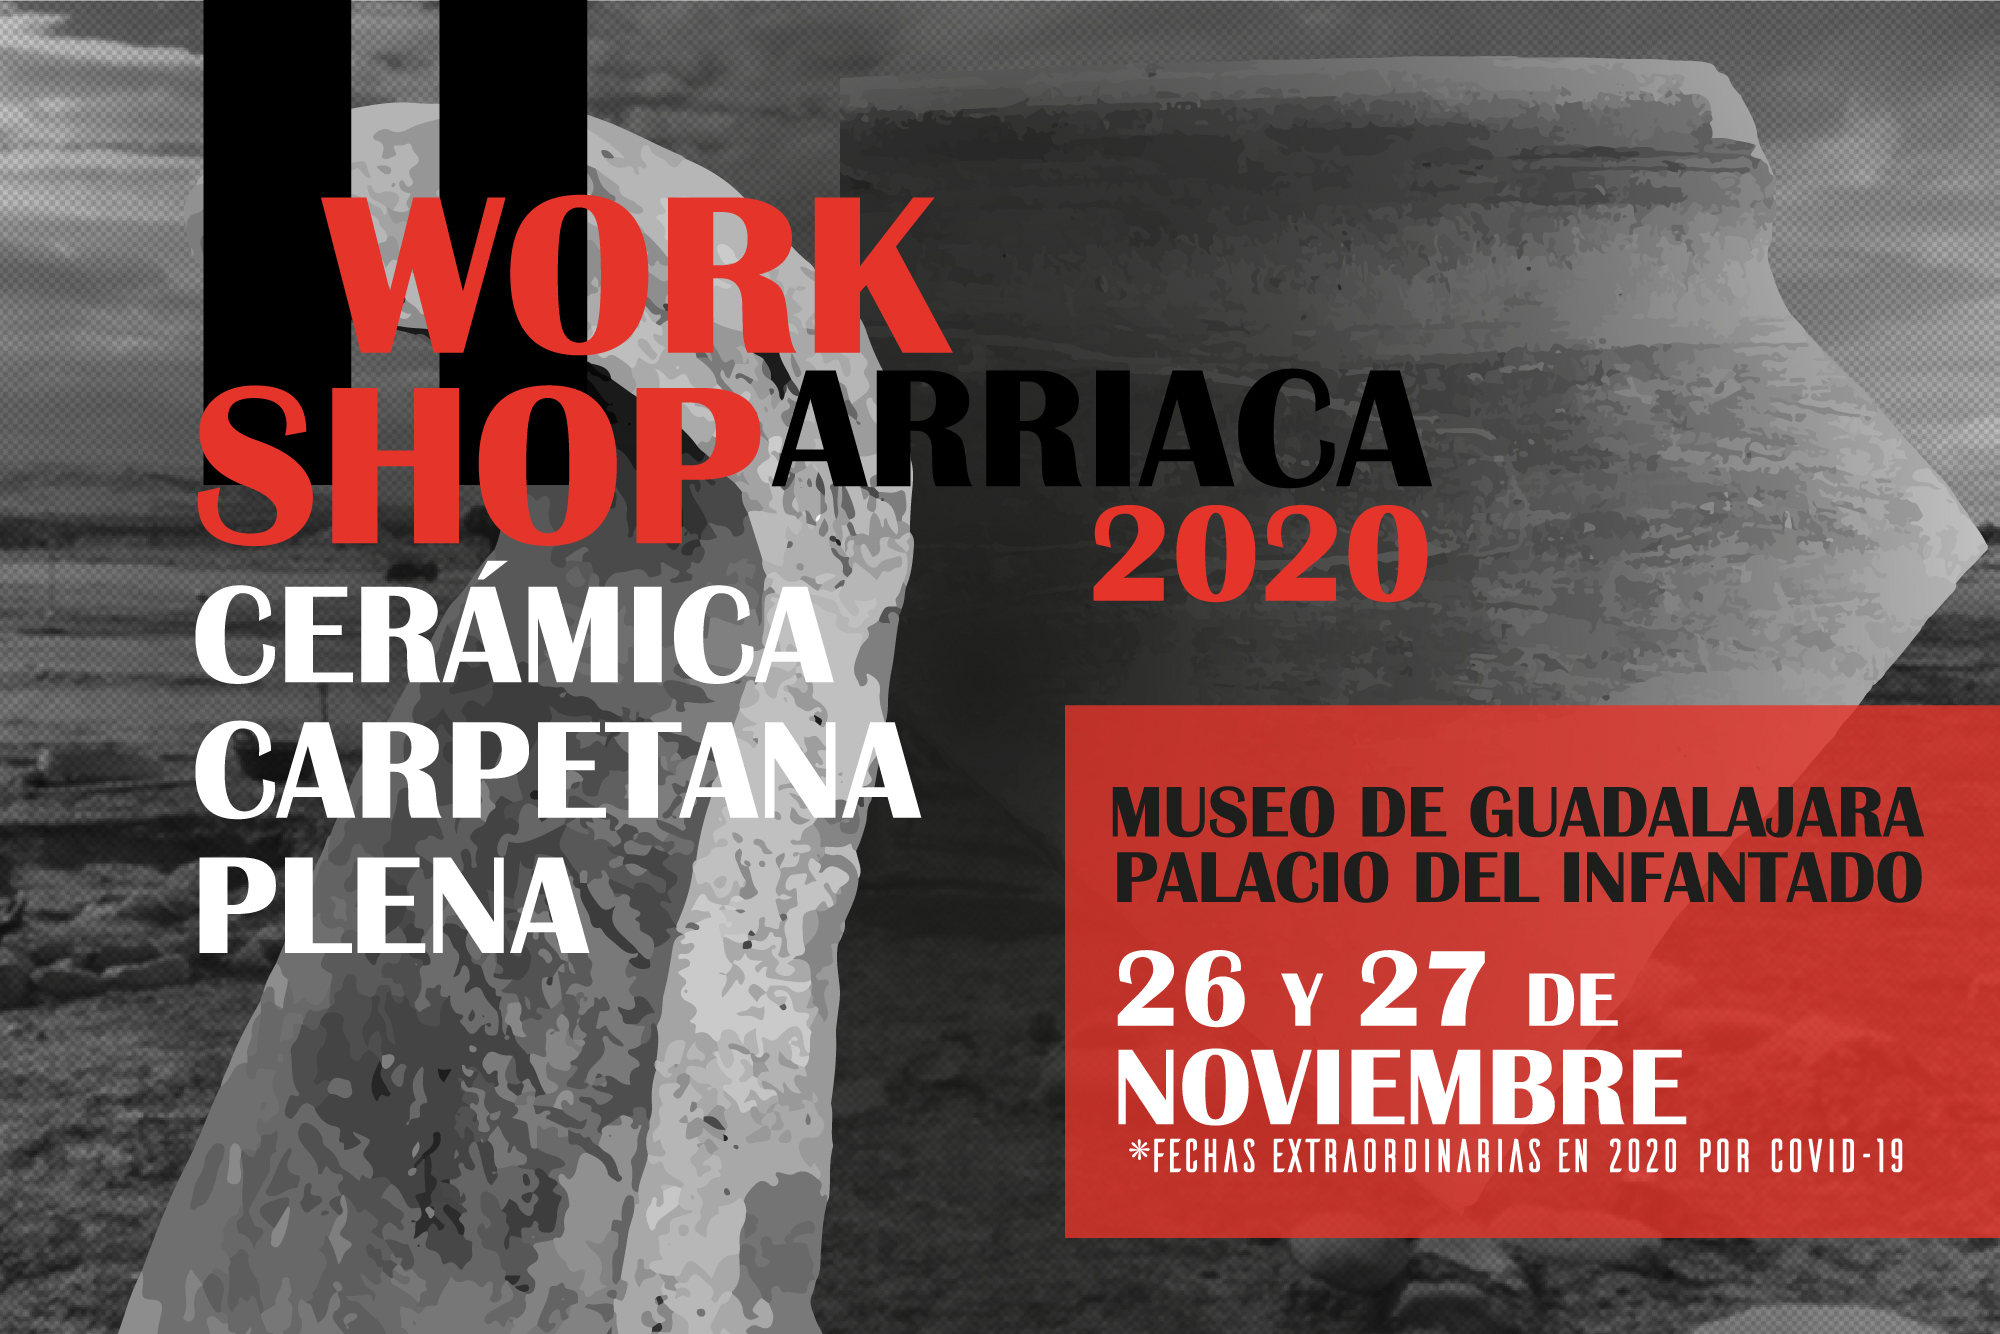 Workshop de Cerámica Carpetana Plena; Arriaca 2020